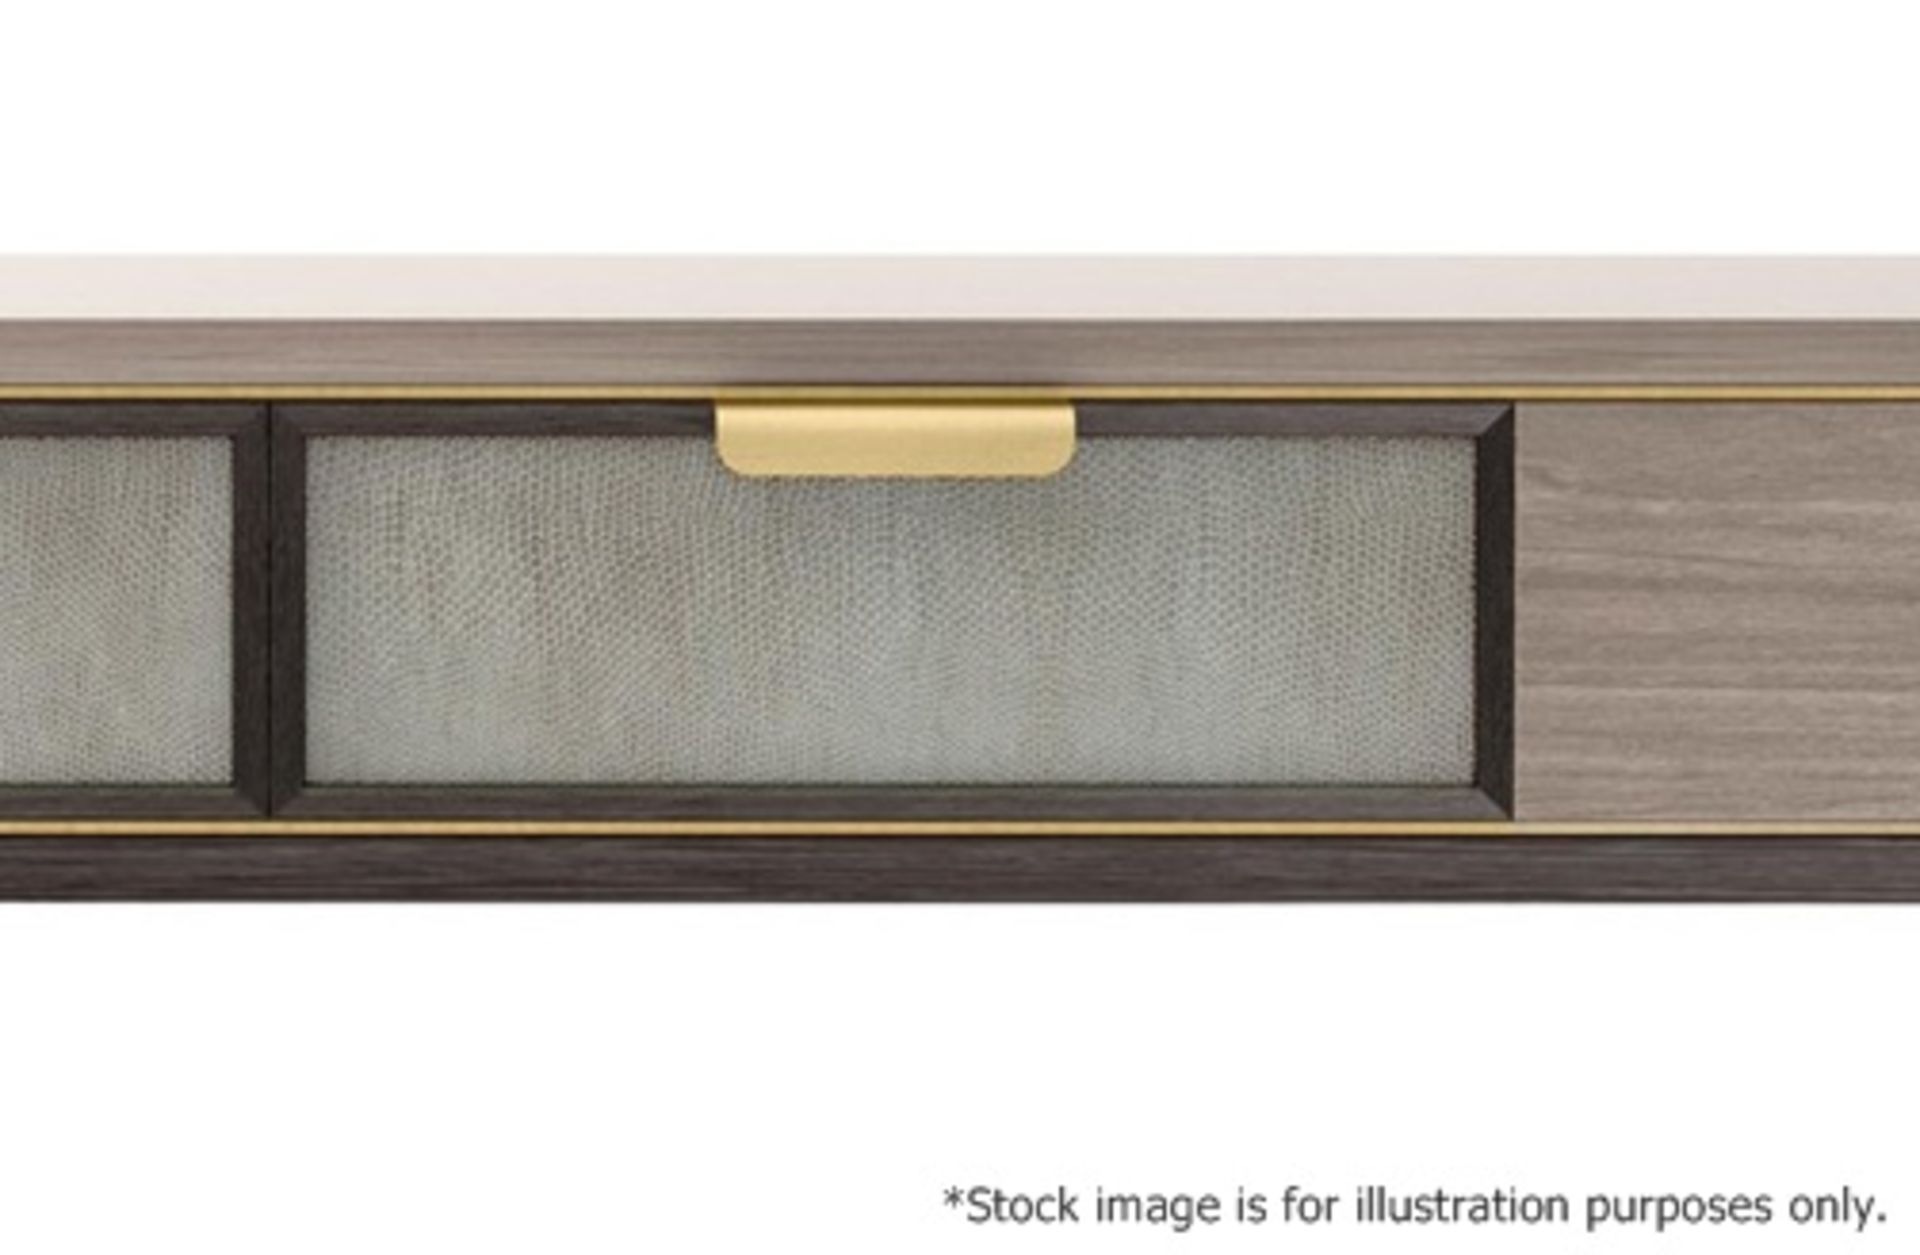 1 x FRATO 'Mandalay' Luxury Designer 2-Drawer Dresser Dressing Table In A Gloss Finish - RRP £4,300 - Image 10 of 17